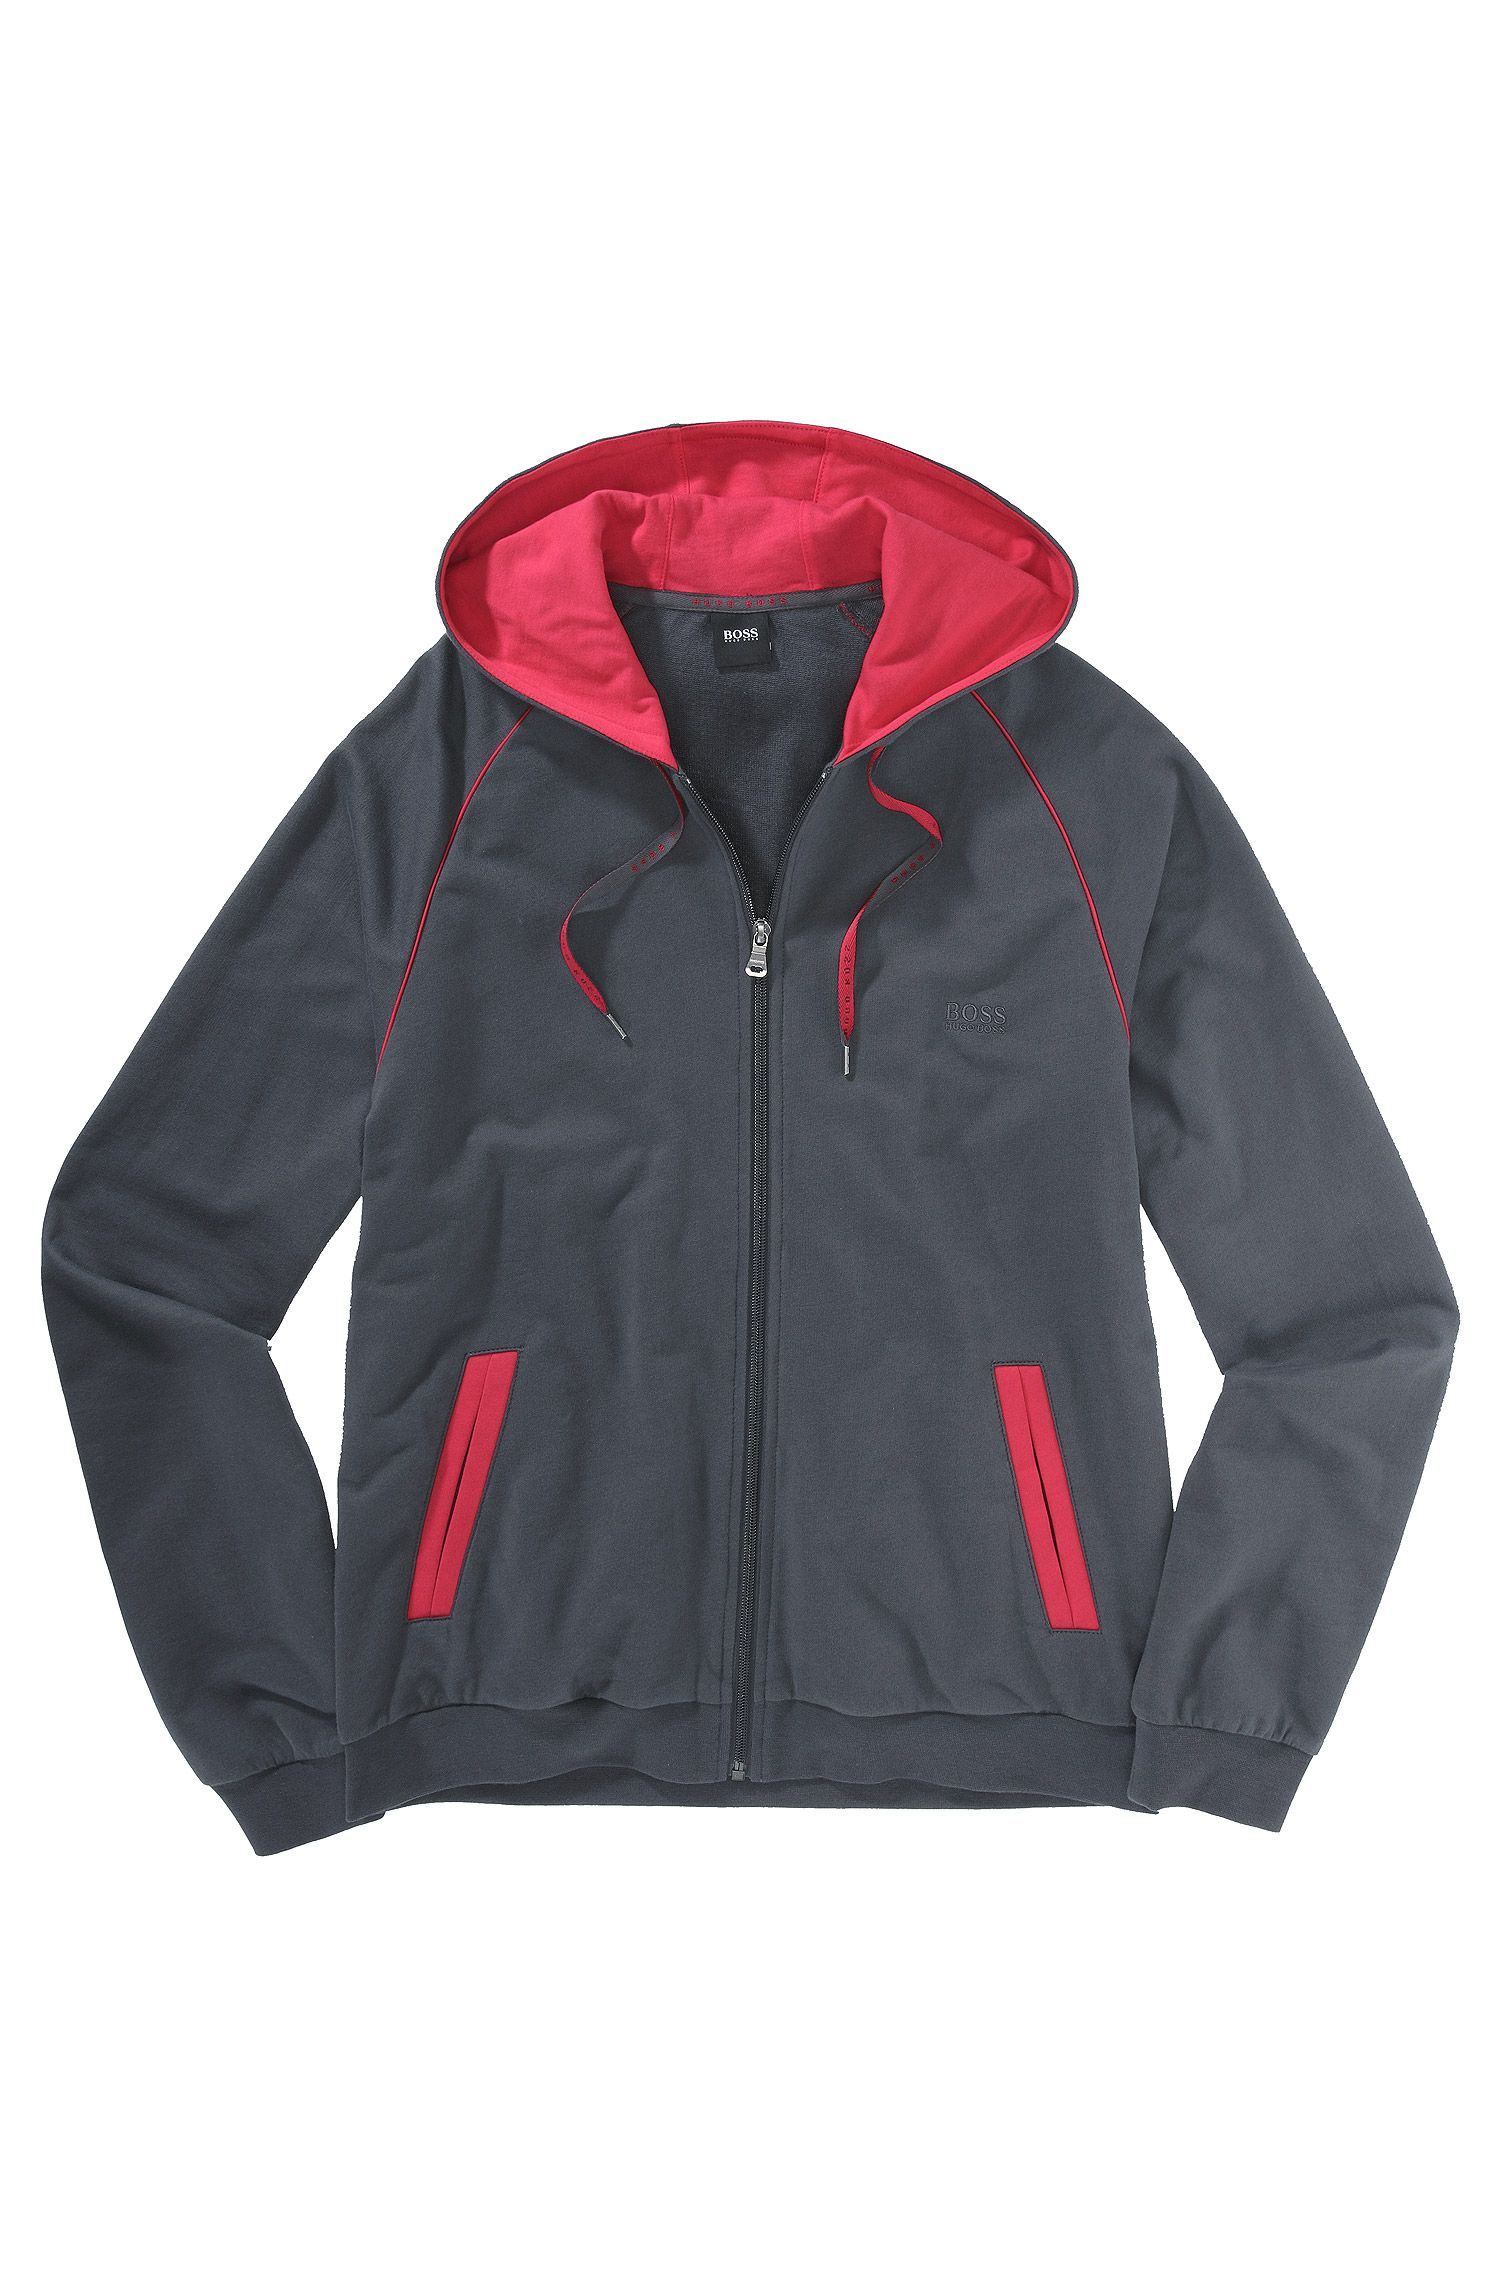 Veste molletonnée Regular Fit, Jacket Hooded BM